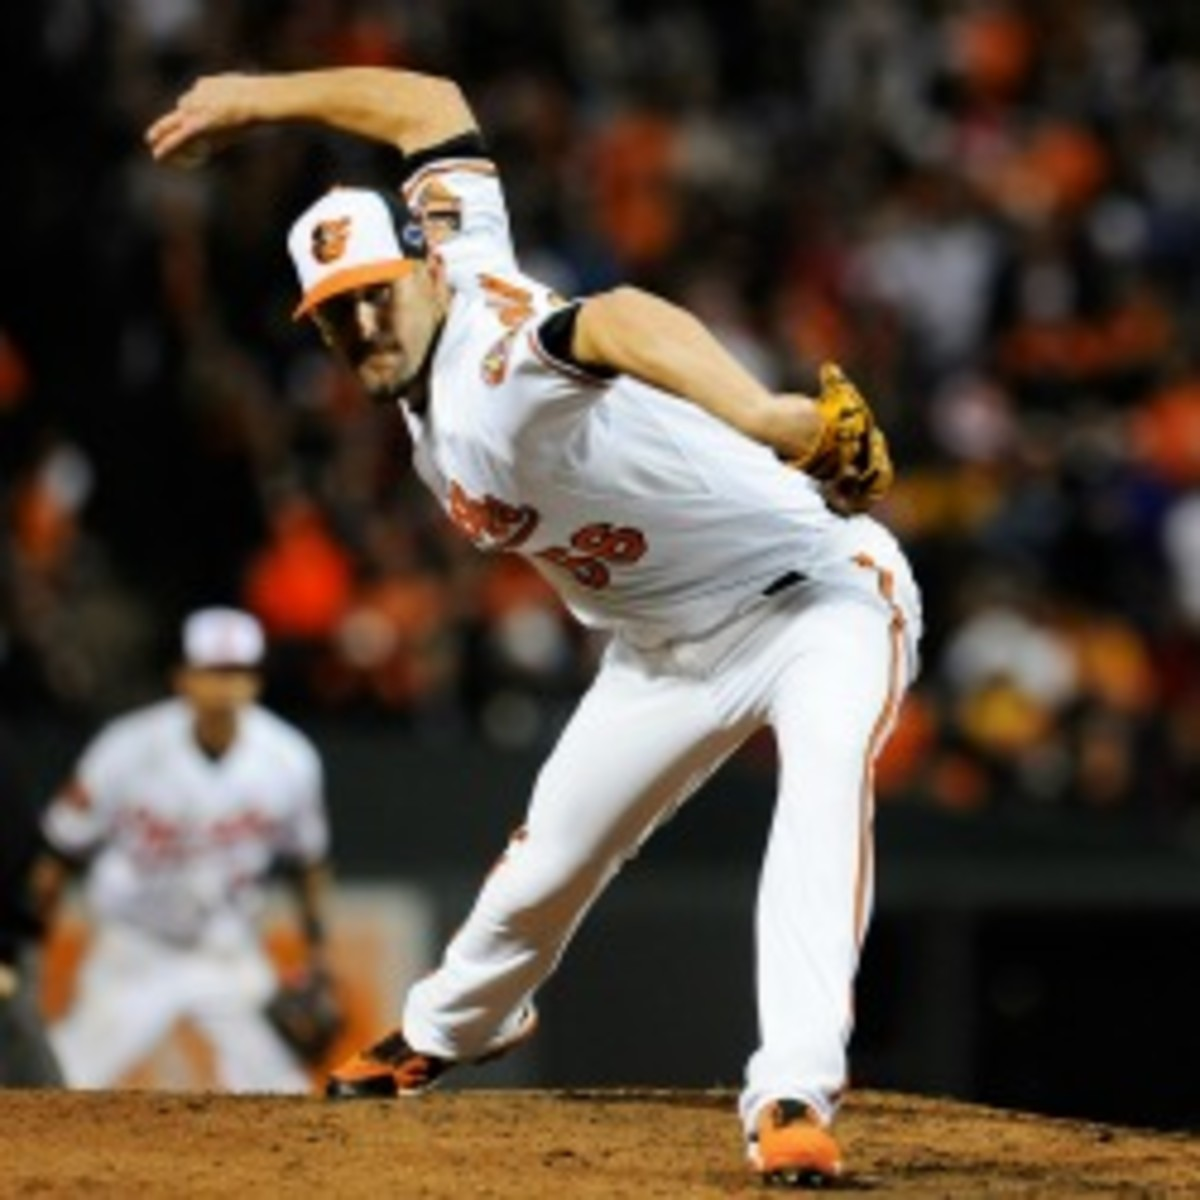 The Orioles and Darren O'Day have signed a two-year contract (Patrick McDermott/Getty Images)